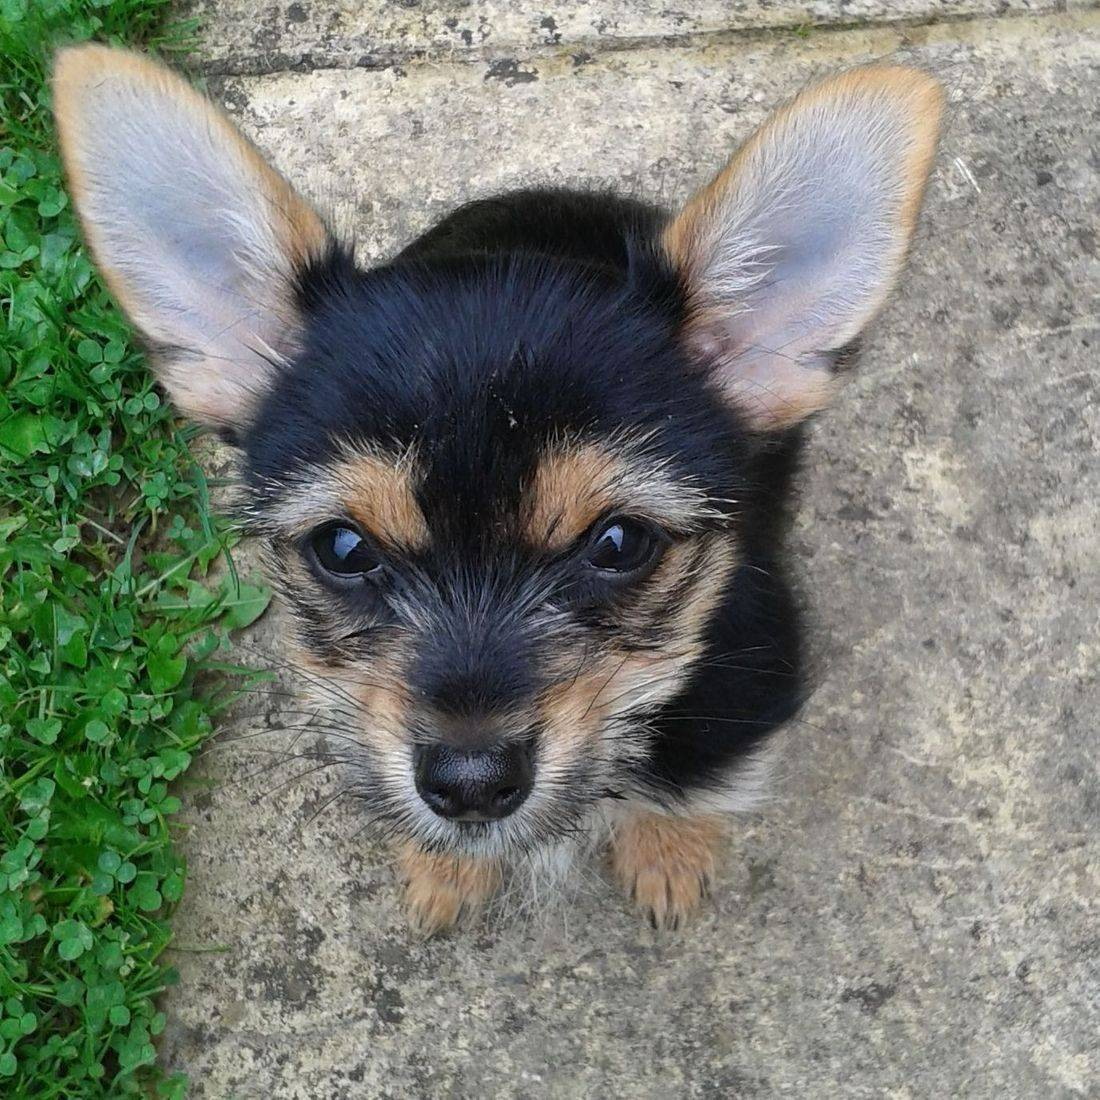 Cute puppy with the biggest ears ever